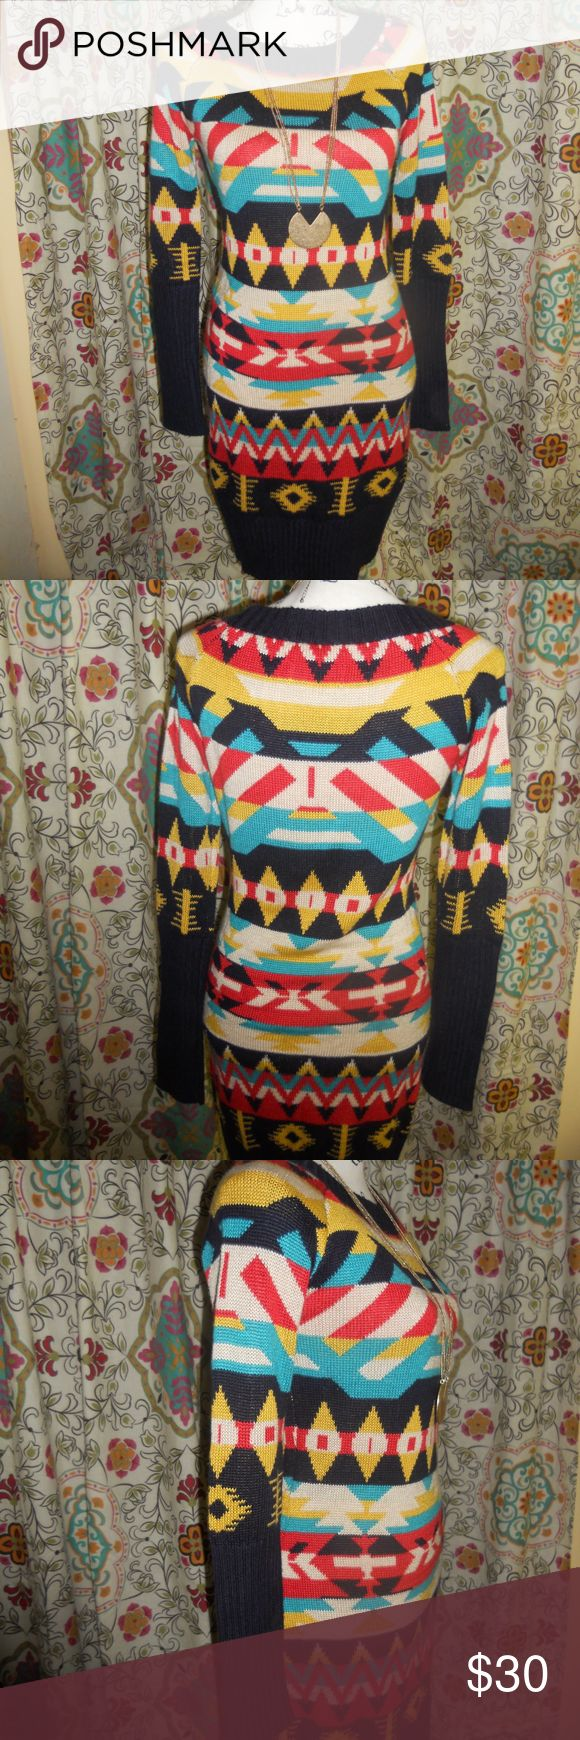 Jessica Simpson Aztec Sweater Dress size Medium EUC Jessica Simpson Aztec sweater dress size medium. Multi-colors to include navy blue, yellow, teal, red, and cream.  A fabulous addition to any wardrobe.  I'm an avid thrift and vintage shopper.  I do the leg work for designer names at affordable prices.  I will do my best to notate any flaws on new or used clothes. My pieces are from my own closet or second hand shops.  Feel free to bundle or send offers.  I live to shop, so help me clean…